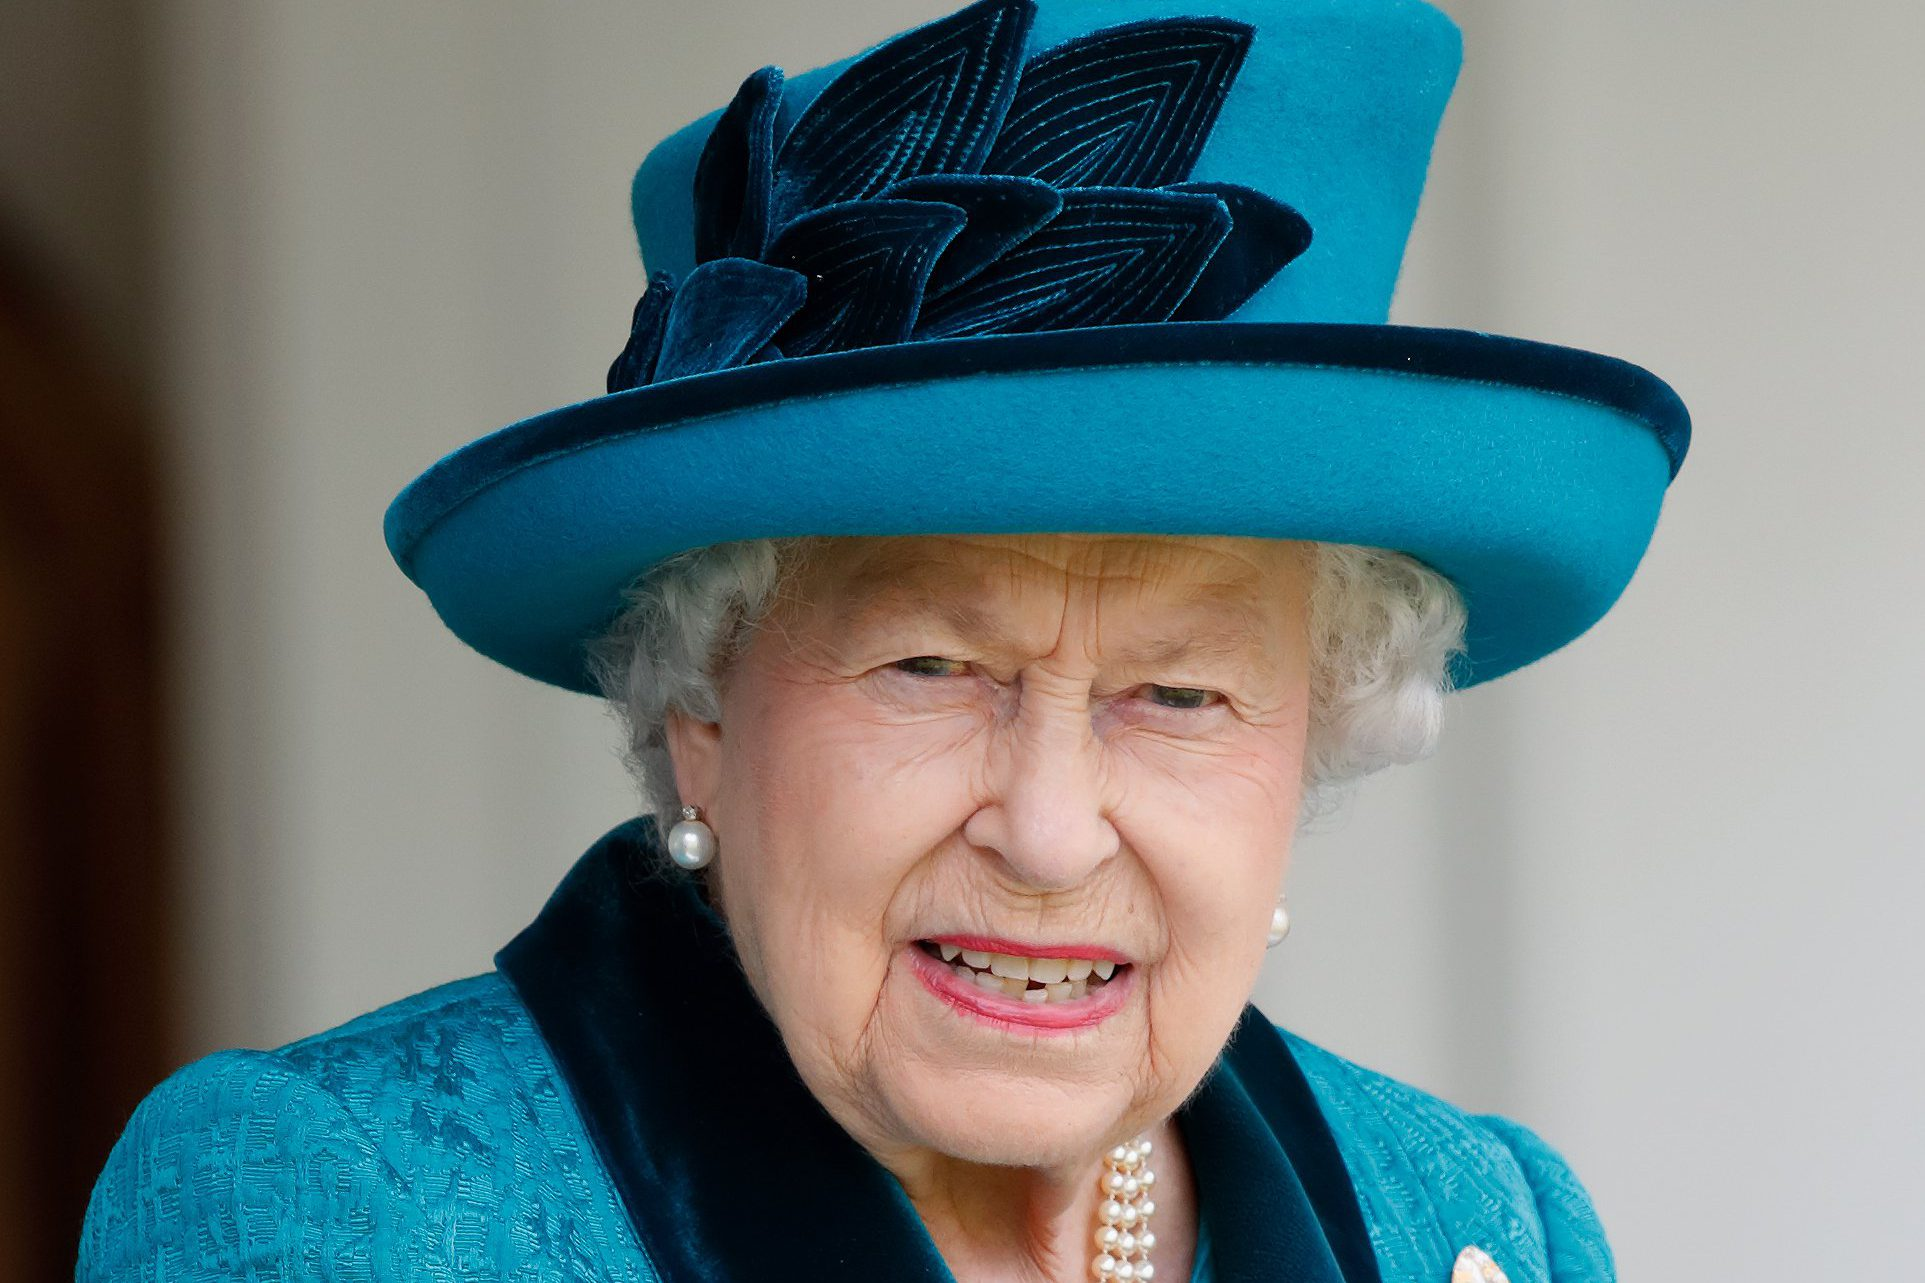 BRAEMAR, UNITED KINGDOM - SEPTEMBER 01: (EMBARGOED FOR PUBLICATION IN UK NEWSPAPERS UNTIL 24 HOURS AFTER CREATE DATE AND TIME) Queen Elizabeth II attends the 2018 Braemar Highland Gathering at The Princess Royal and Duke of Fife Memorial Park on September 1, 2018 in Braemar, Scotland. (Photo by Max Mumby/Indigo/Getty Images)